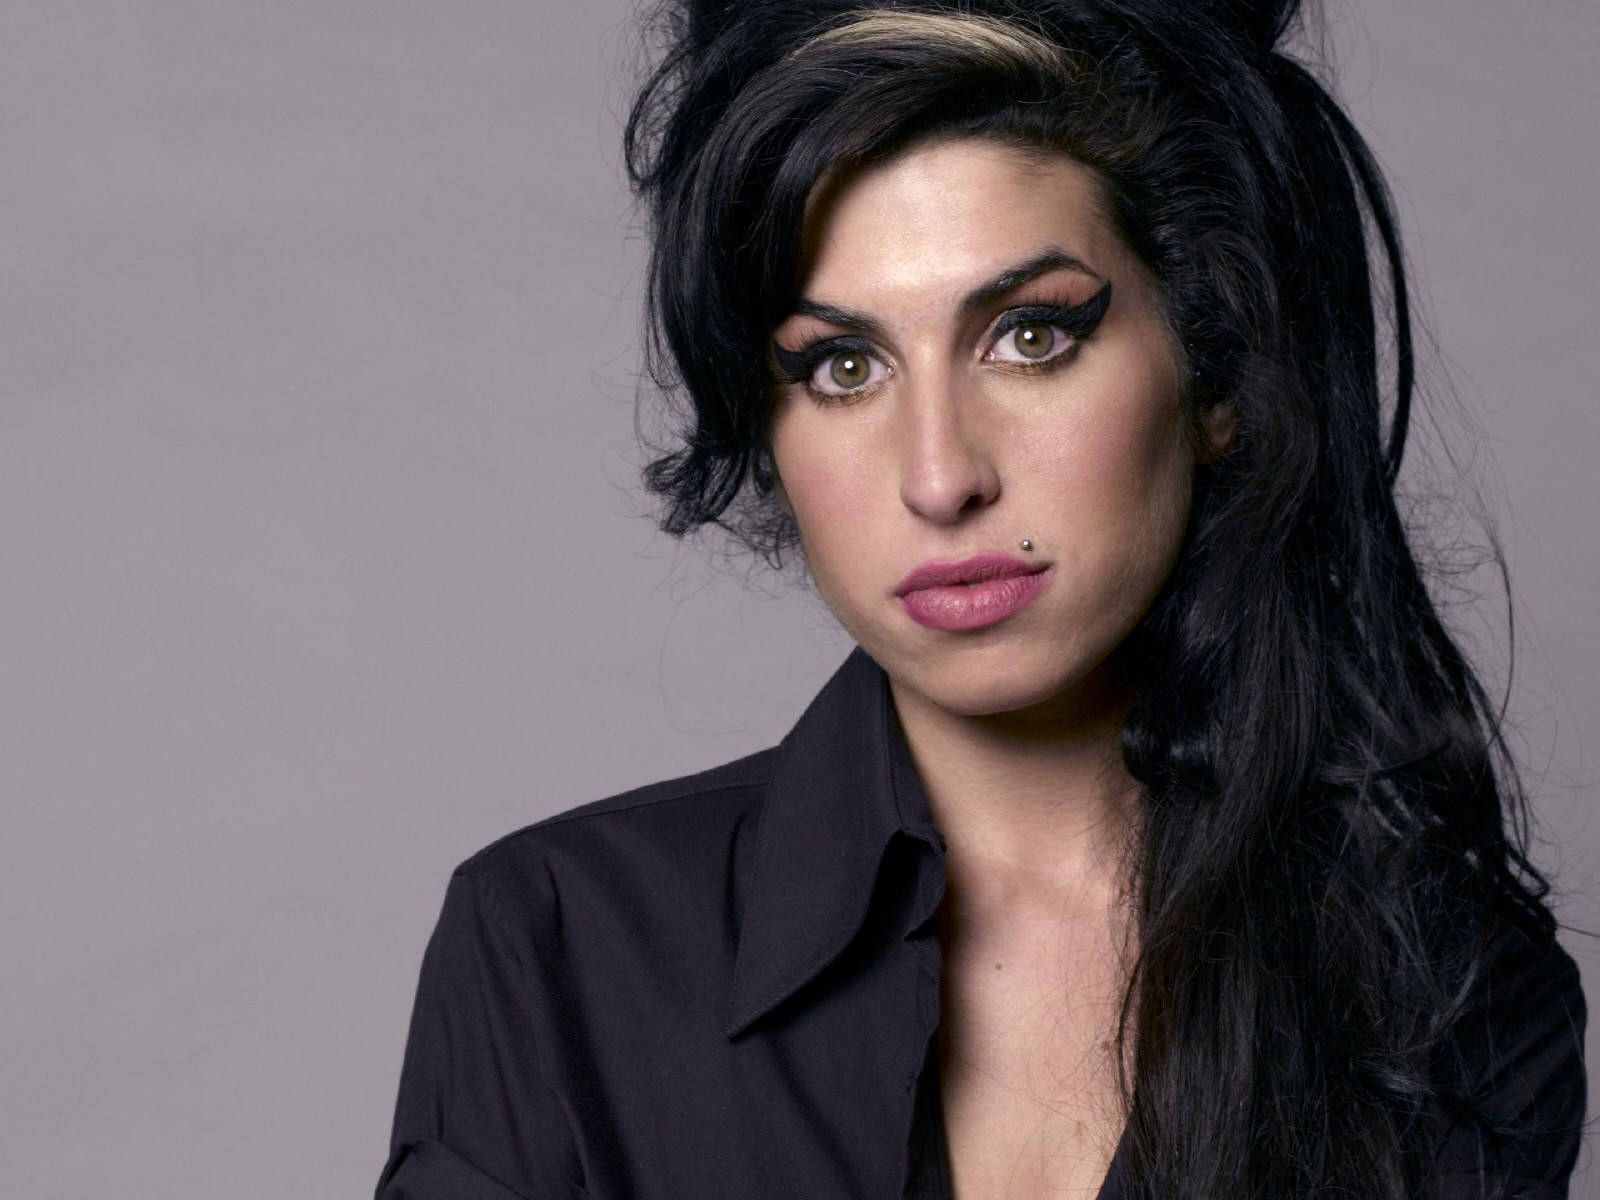 Back to Black?- Gaultier's Amy Winehouse Tribute | Love, Honey Amy Winehouse